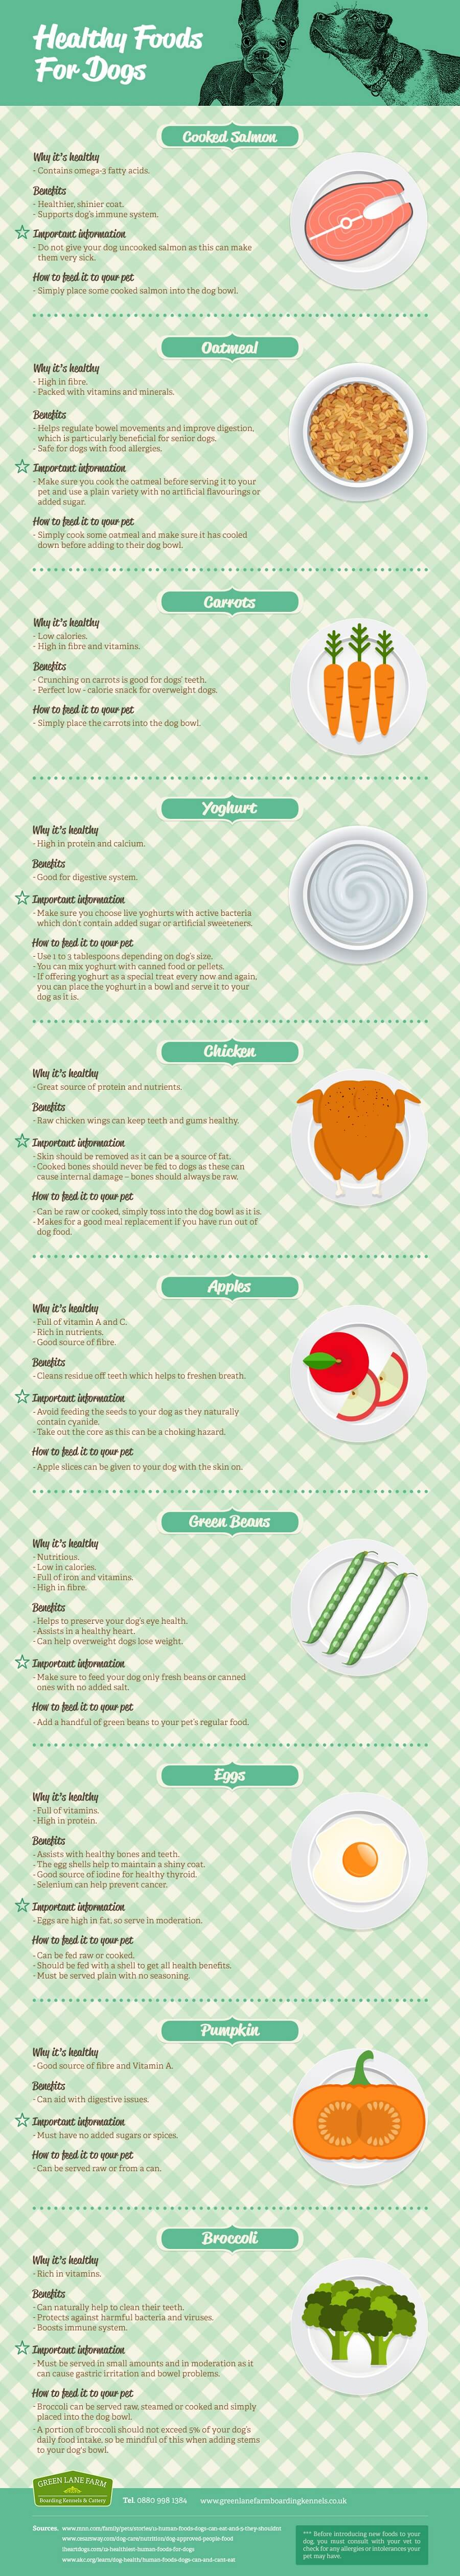 healthy foods for dogs infographic